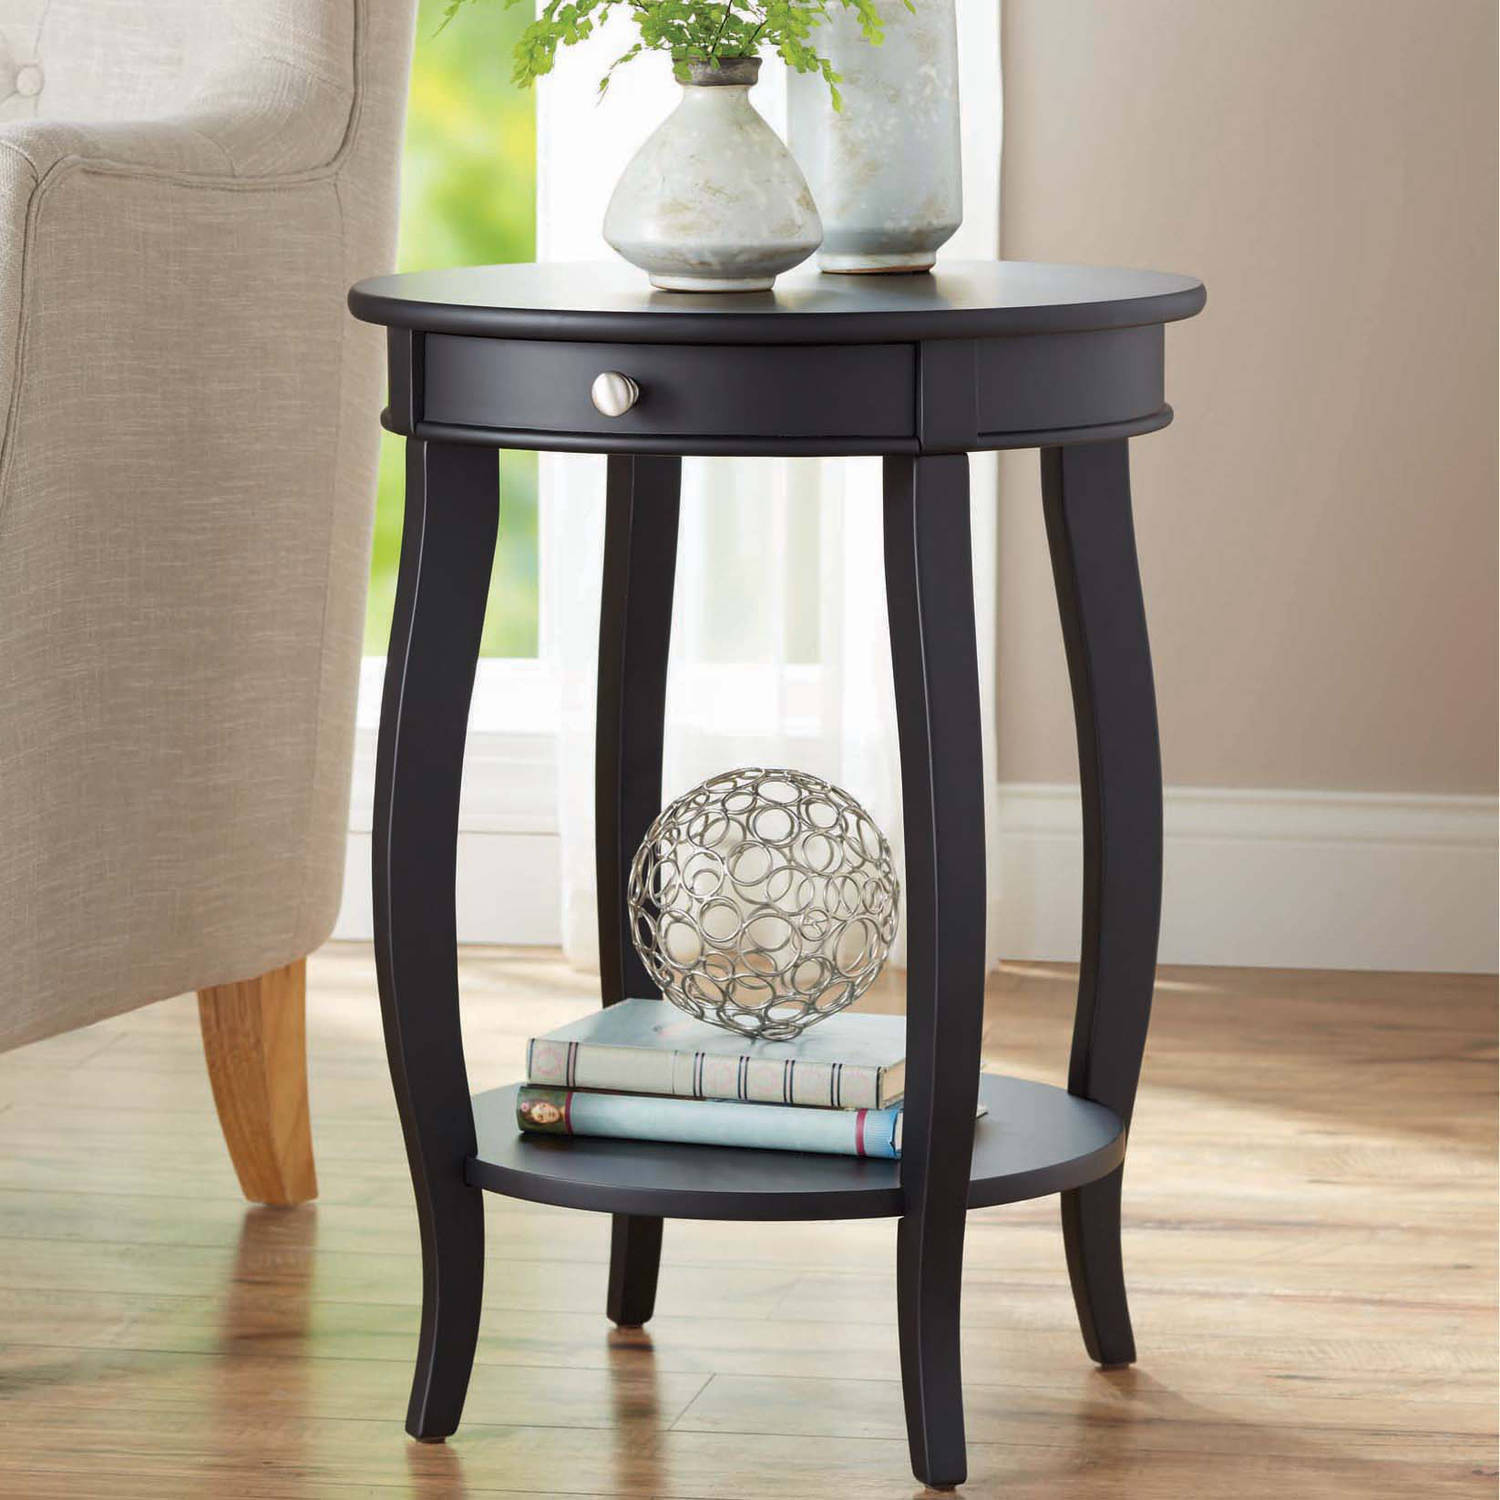 better homes gardens round accent table with drawer multiple tall metal colors rustic wood side black lamps vale furniture kitchen and chairs breakfast bar bengal manor mango